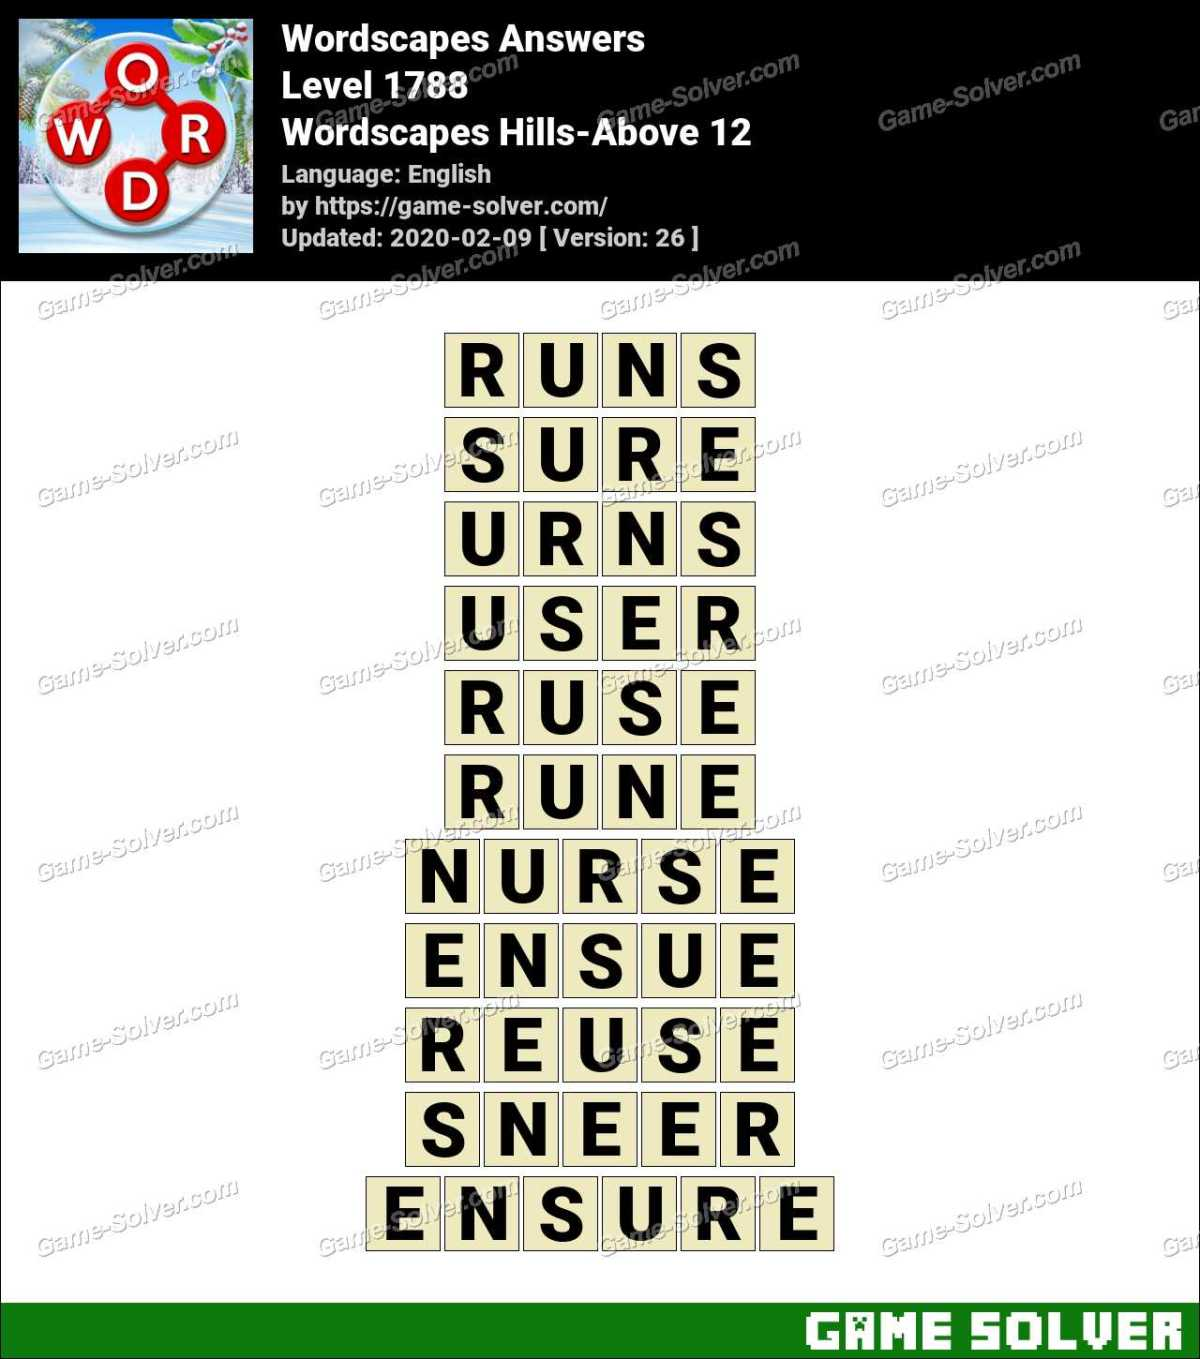 Wordscapes Hills-Above 12 Answers